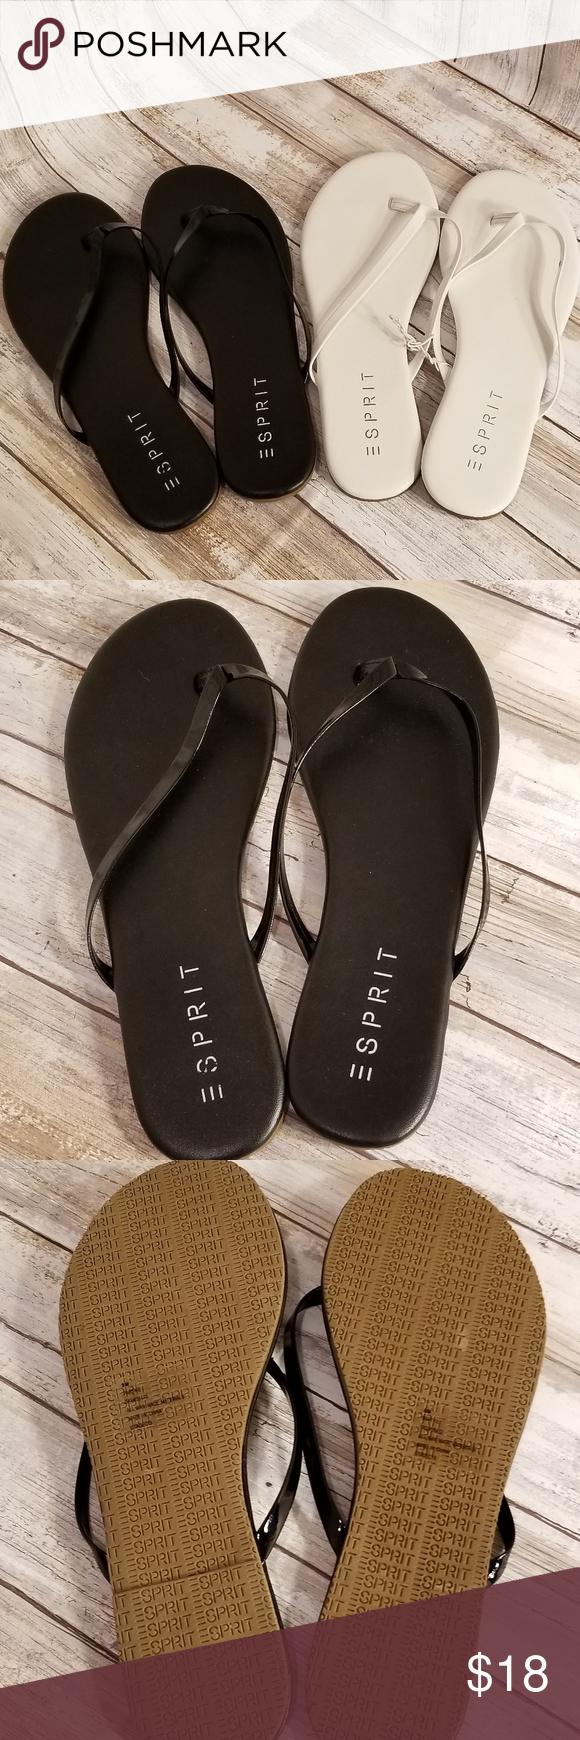 71ca0ee3ff7a ESPRIT PARTY E 2 FLIP FLOP SANDAL S SIZE 8  2 PAIR Lot of 2 pairs of ...